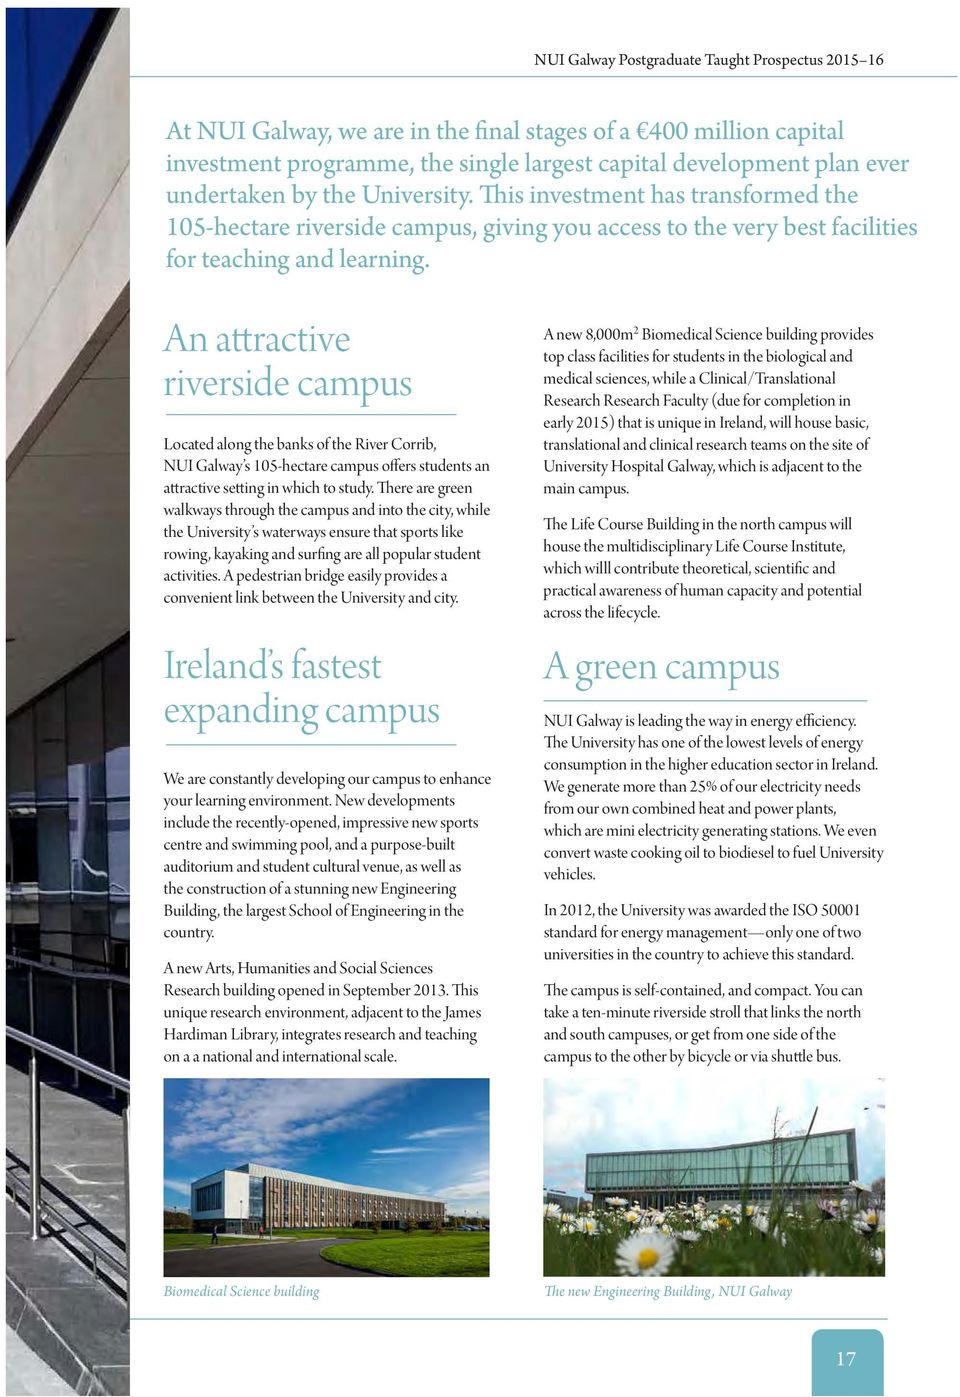 An attractive riverside campus Located along the banks of the River Corrib, NUI Galway s 105-hectare campus offers students an attractive setting in which to study.